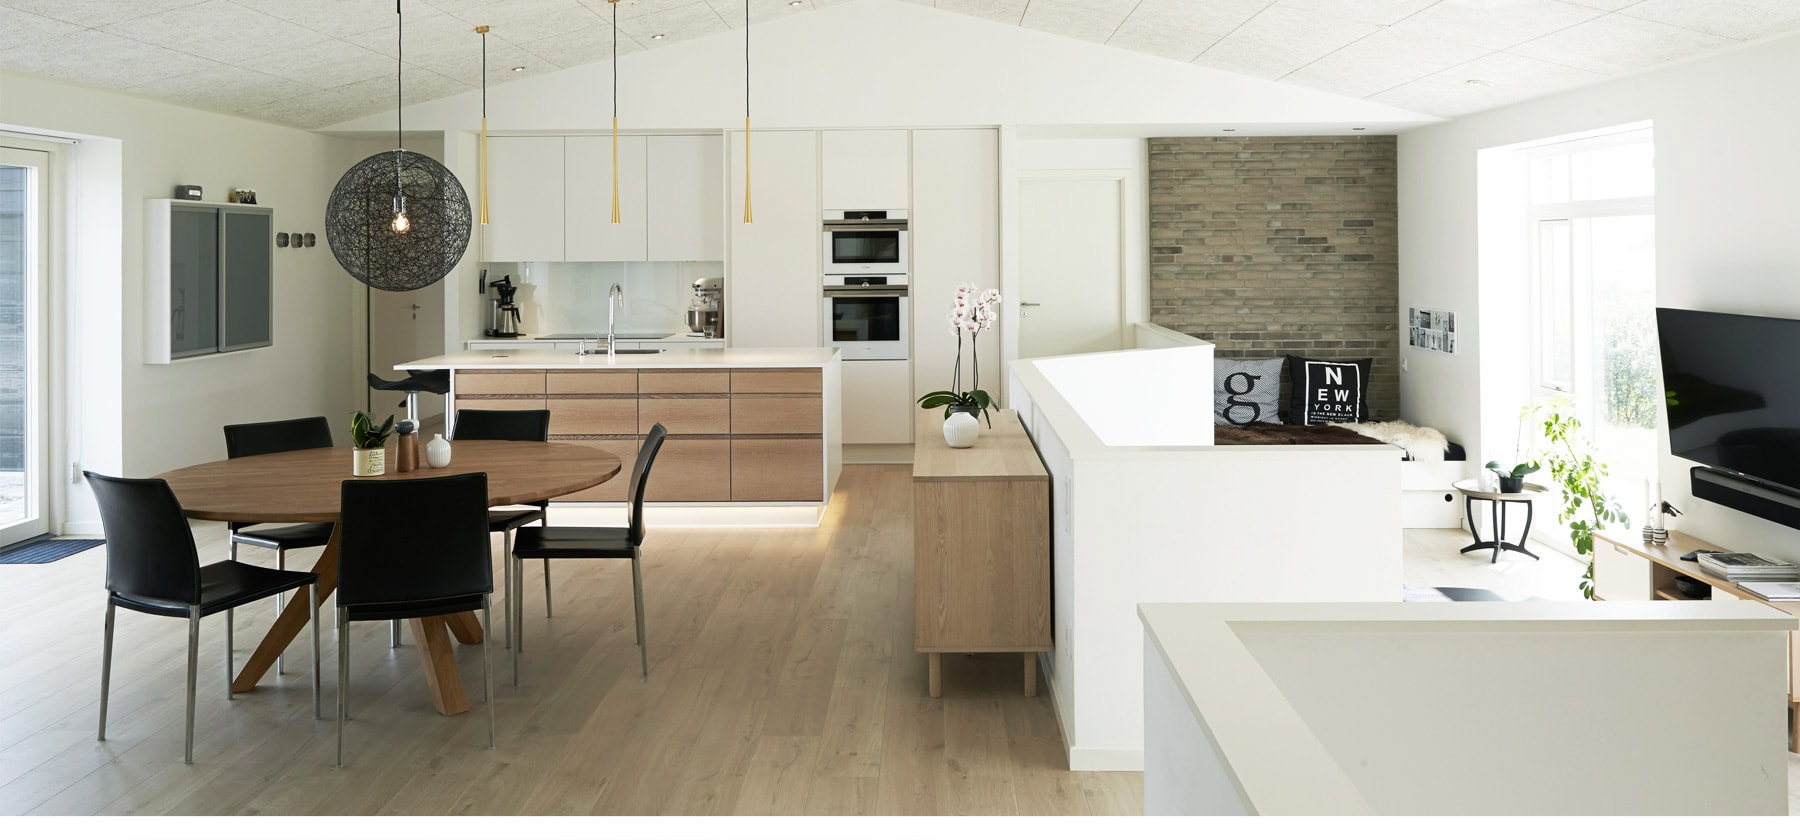 New kitchenWITH WOOD MATERIALS <br> AND WOW FACTOR